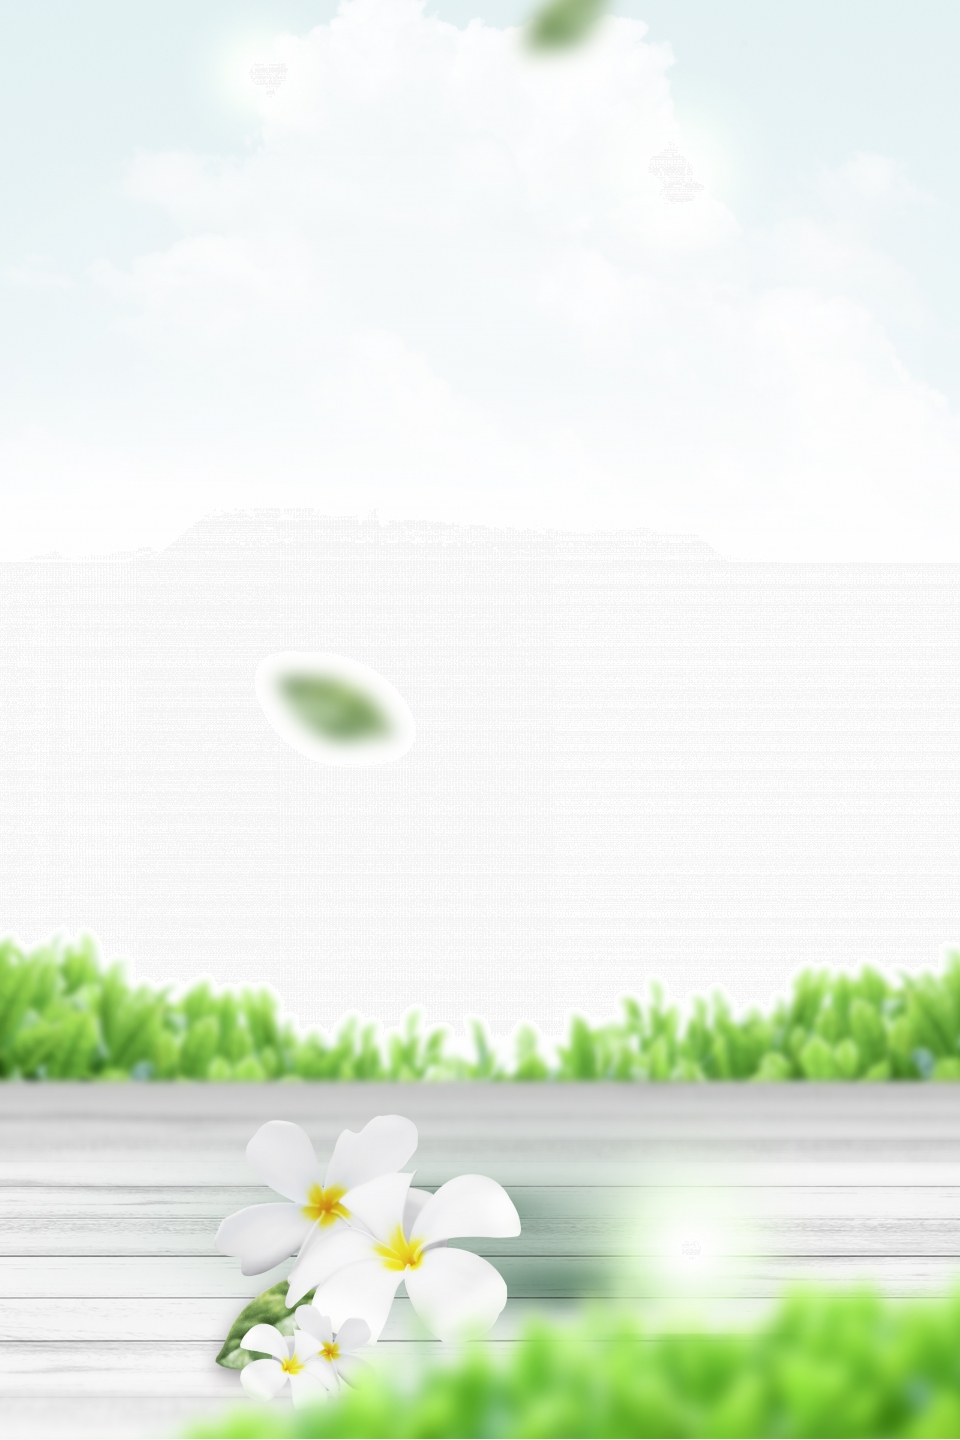 Simple Flower Natural Skin Care Background Cosmetics Skin Care Products Toner Background Image For Free Download